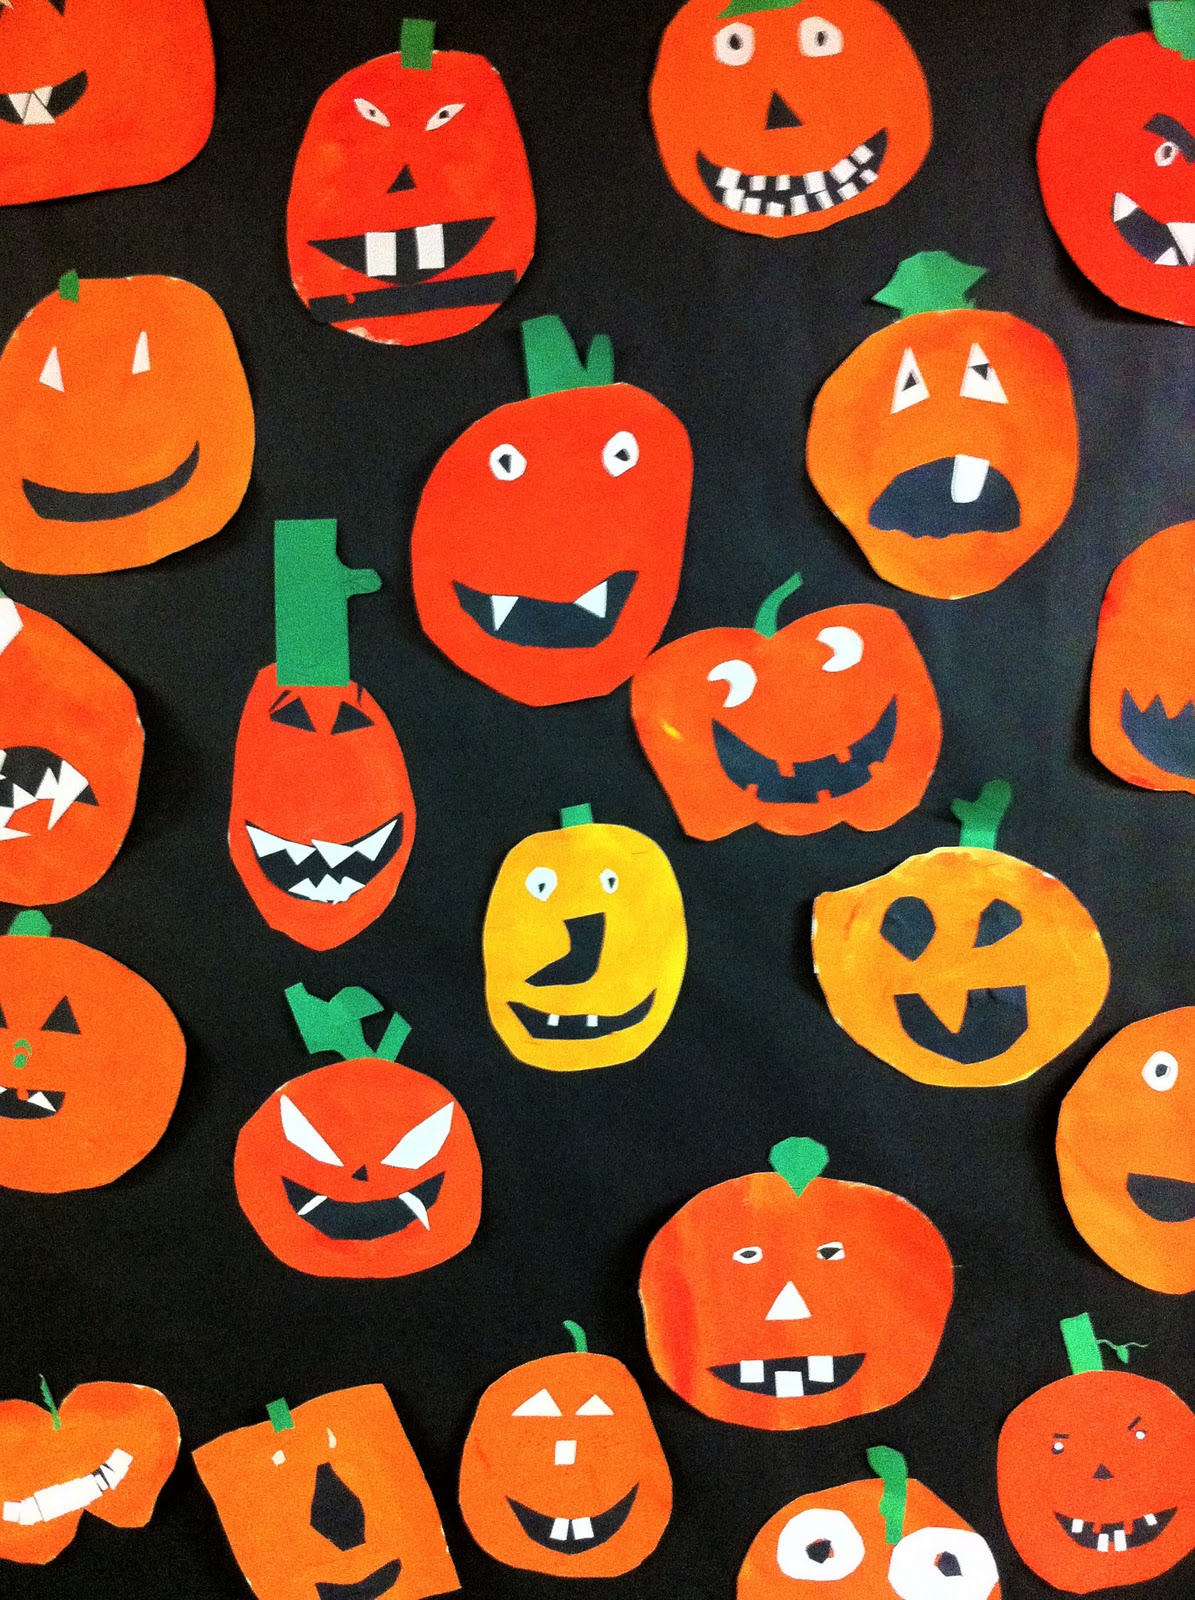 the teacher wife cute halloween ideas for the classroom - Halloween Glyphs